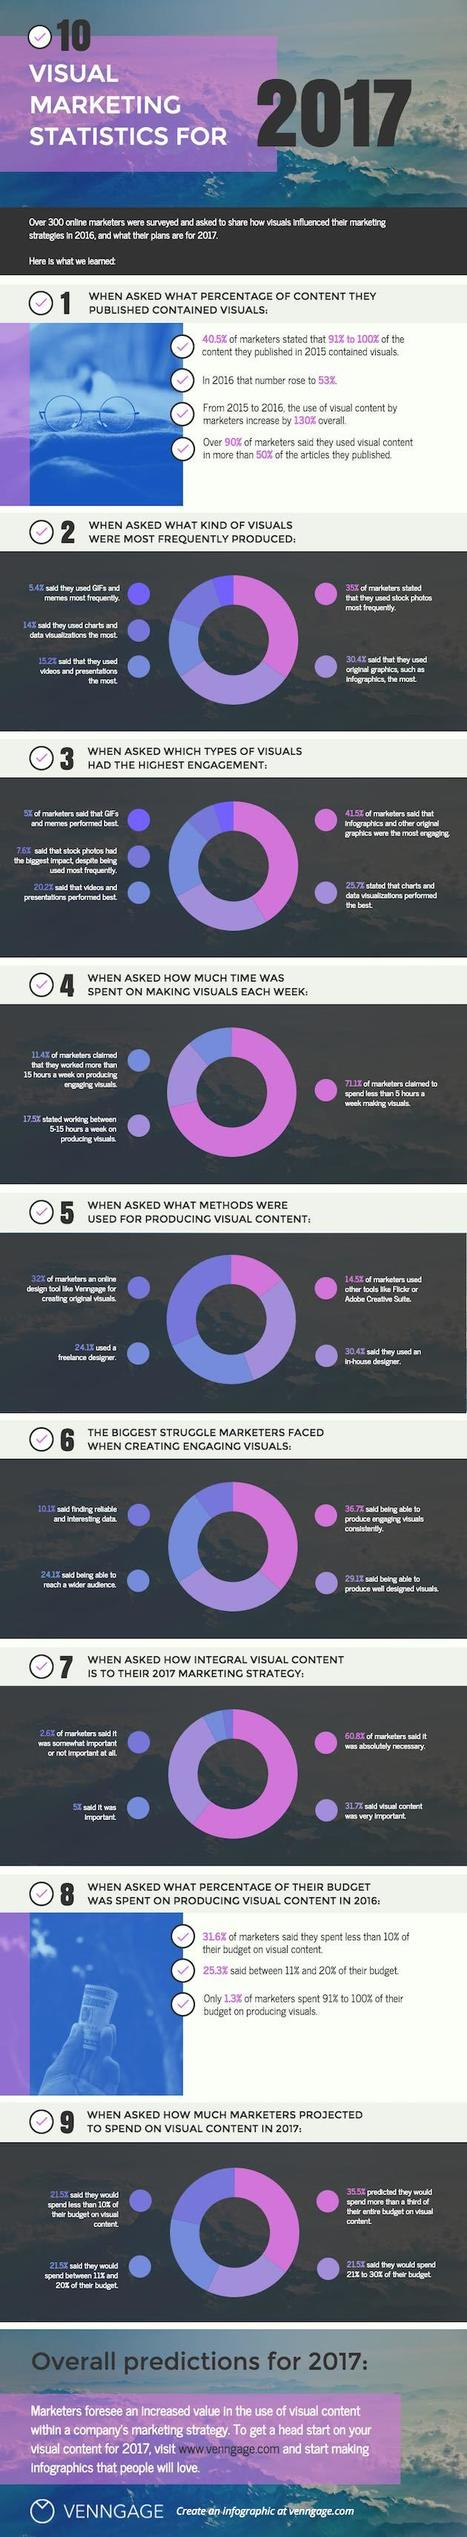 How Digital Marketers Are Using Visual Content [Infographic] | Integrated Brand Communications | Scoop.it